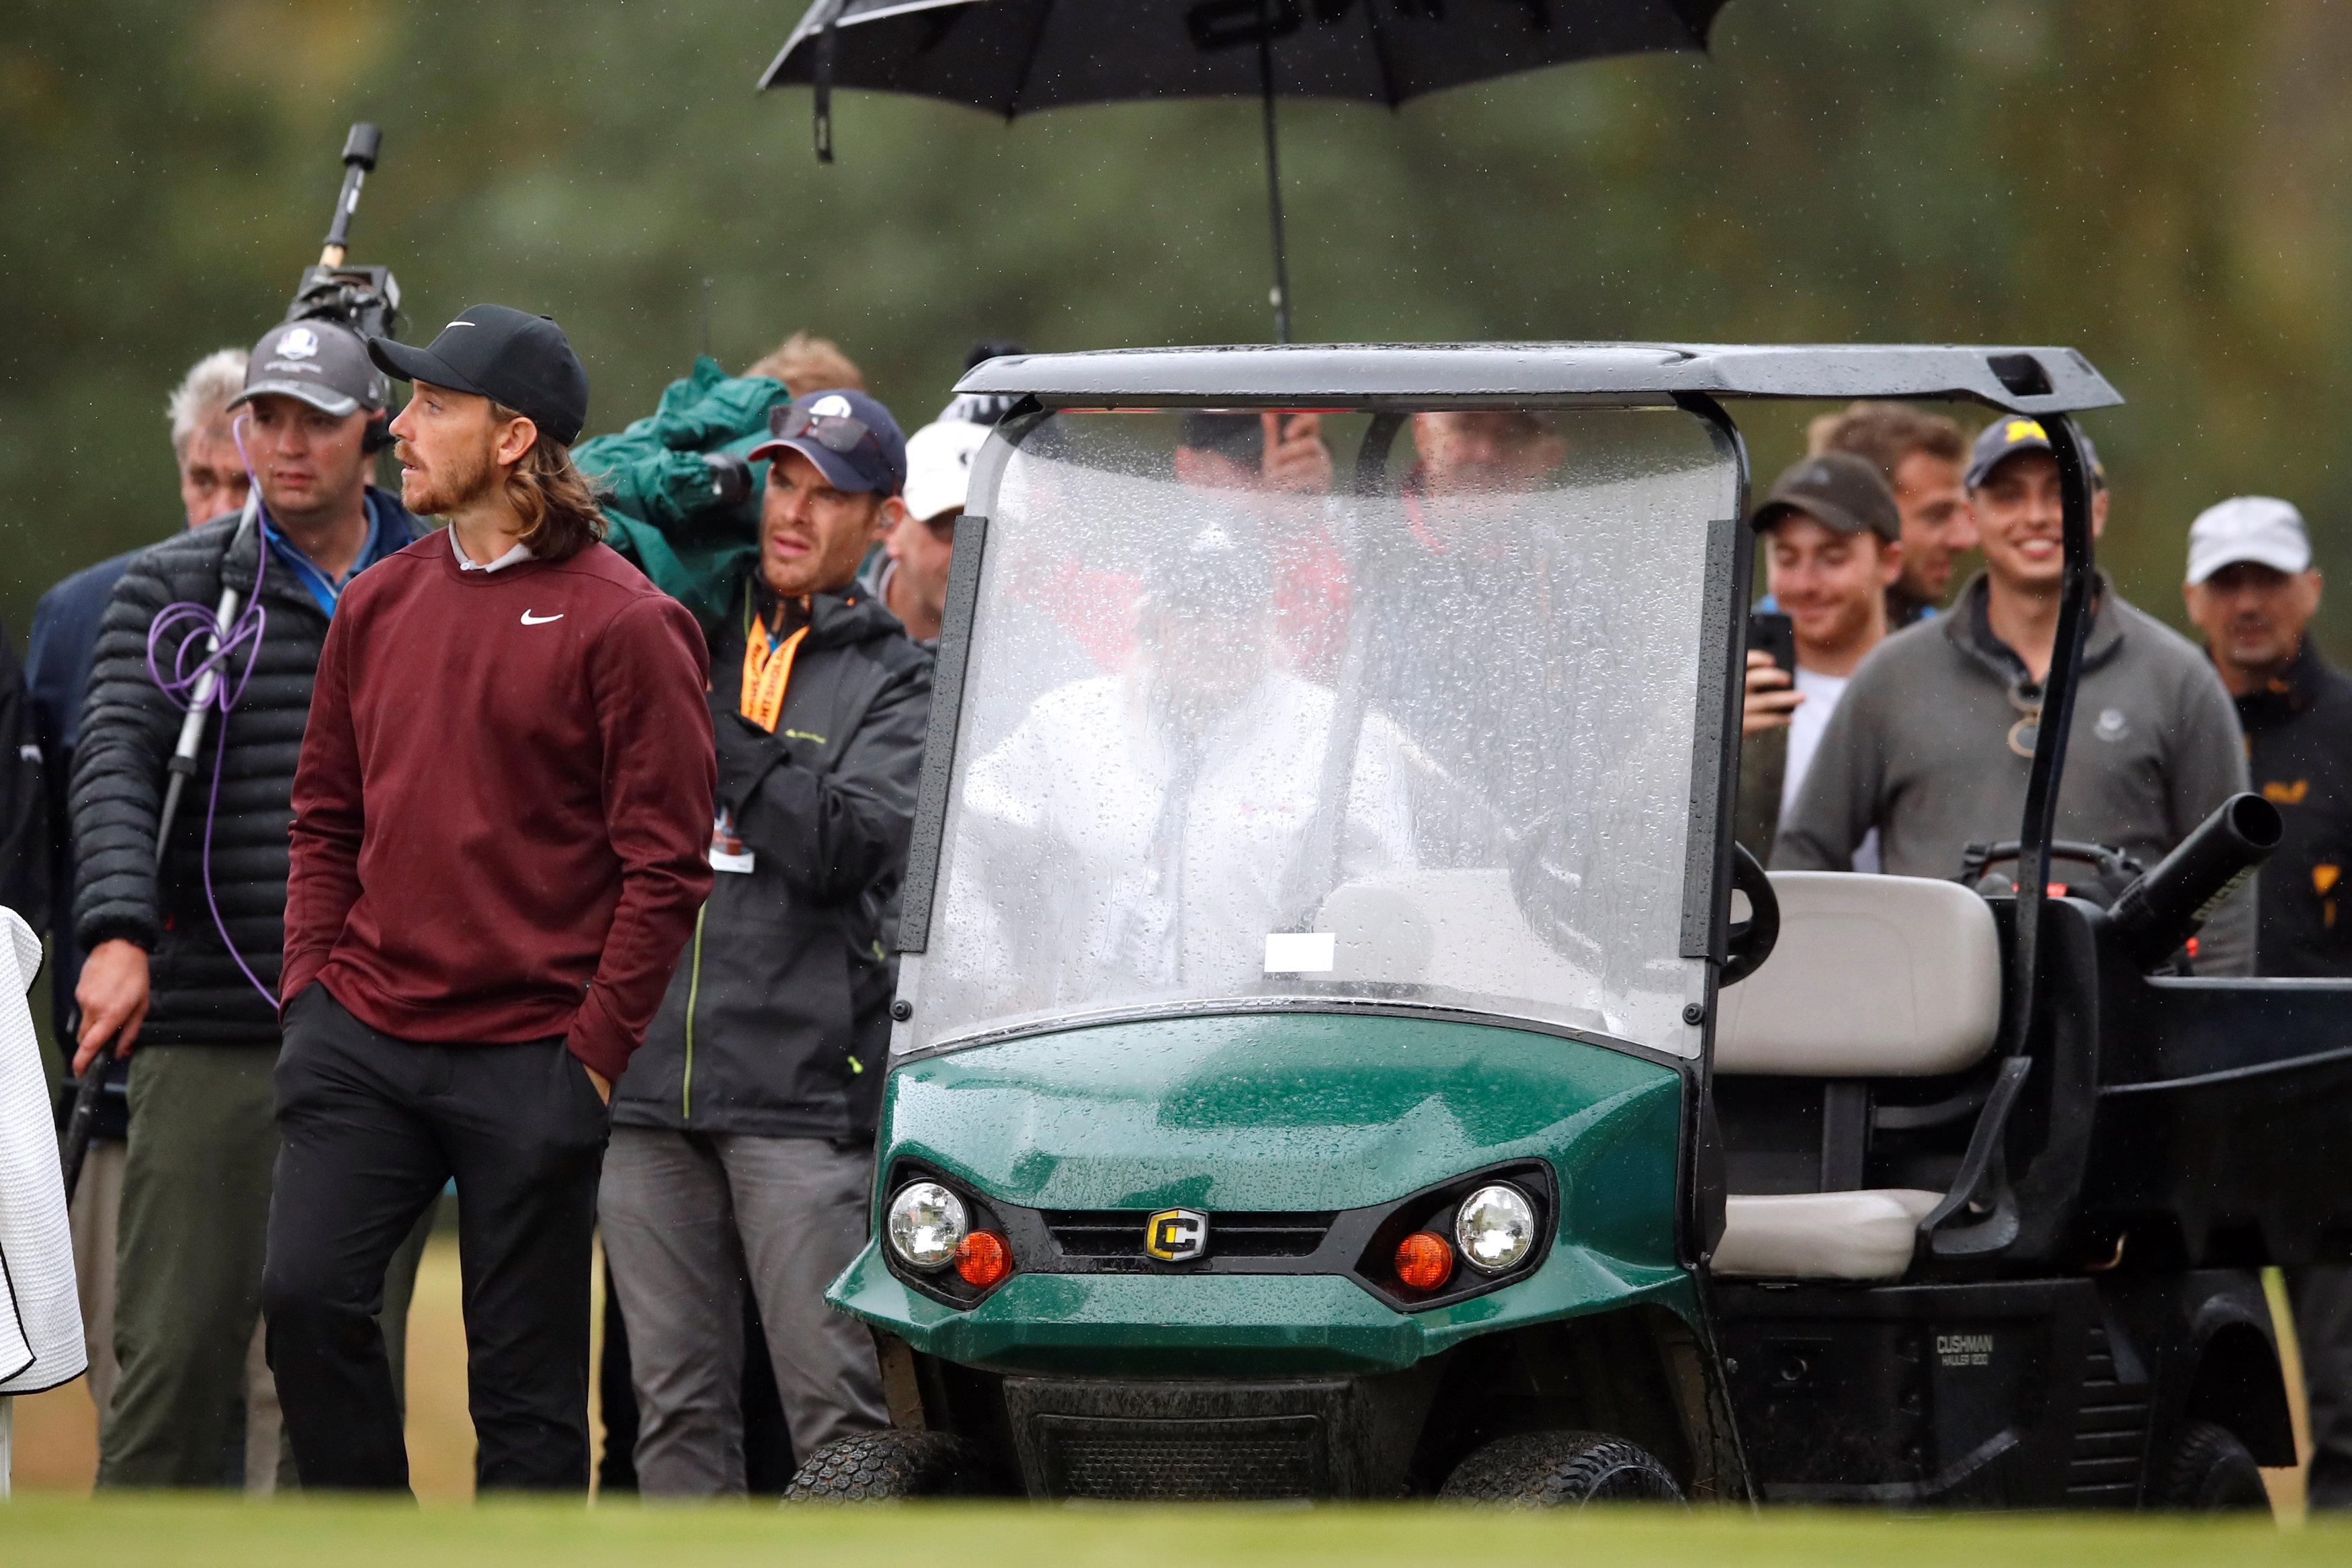 Fleetwood waits for a ruling after hitting into the cart